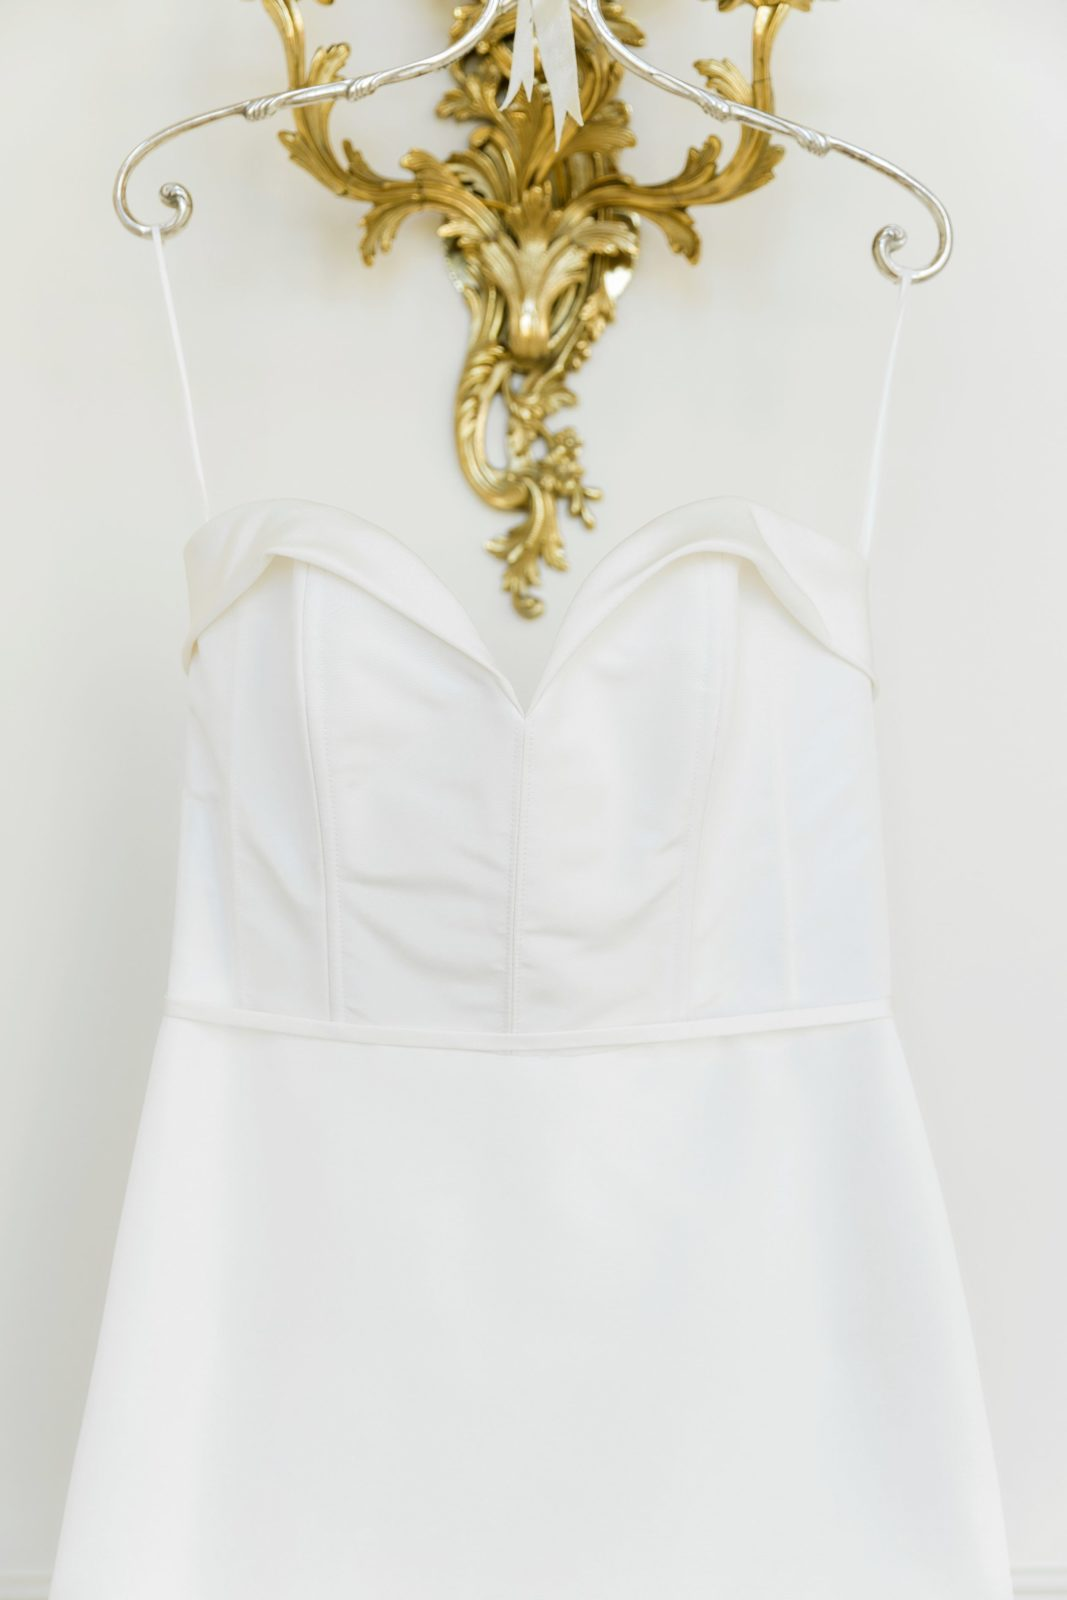 Sweetheart neckline wedding dress: Sophisticated and Chic wedding inspiration on Alexa Kay Events